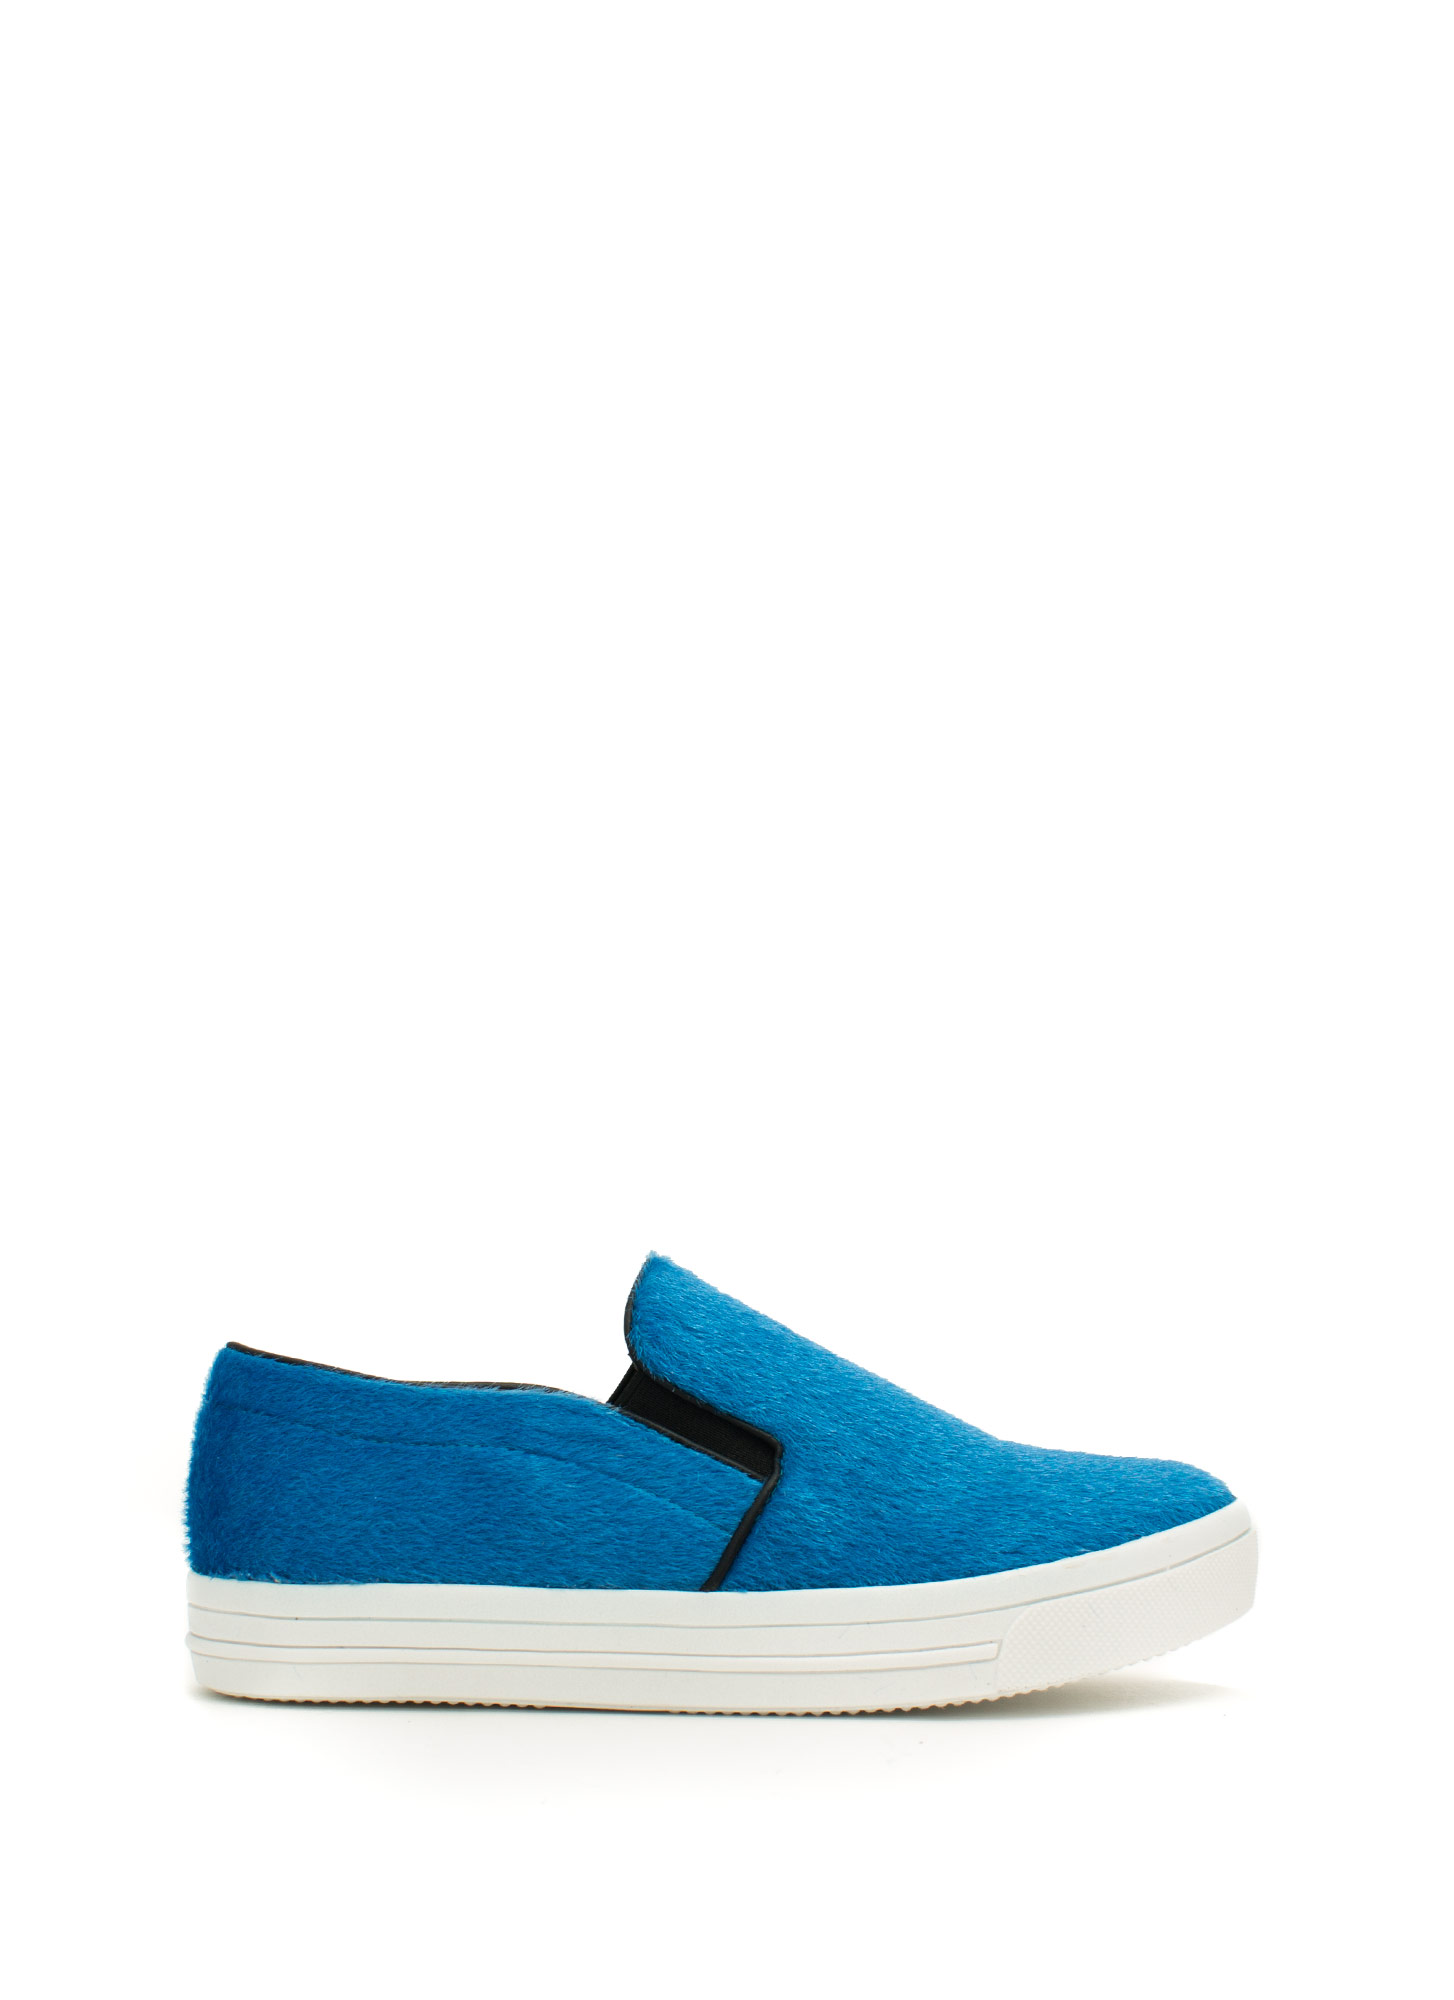 Furry Piped Slip-On Sneakers BLUE